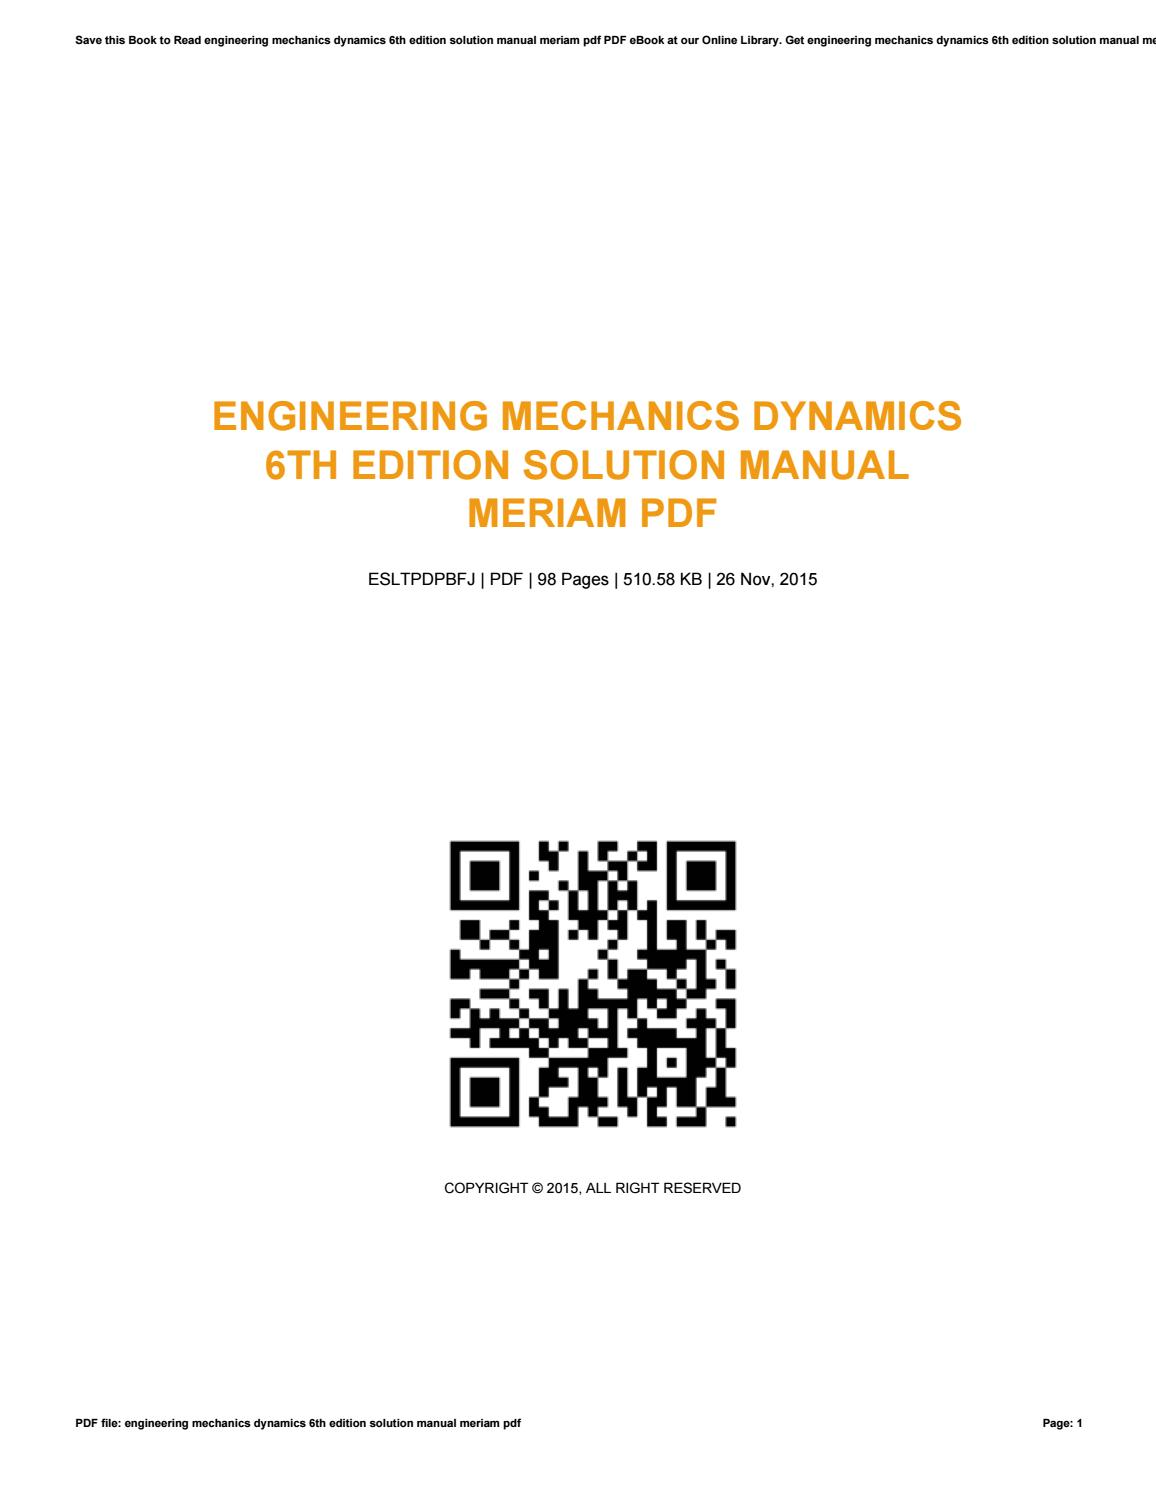 Engineering Mechanics Dynamics Meriam Pdf